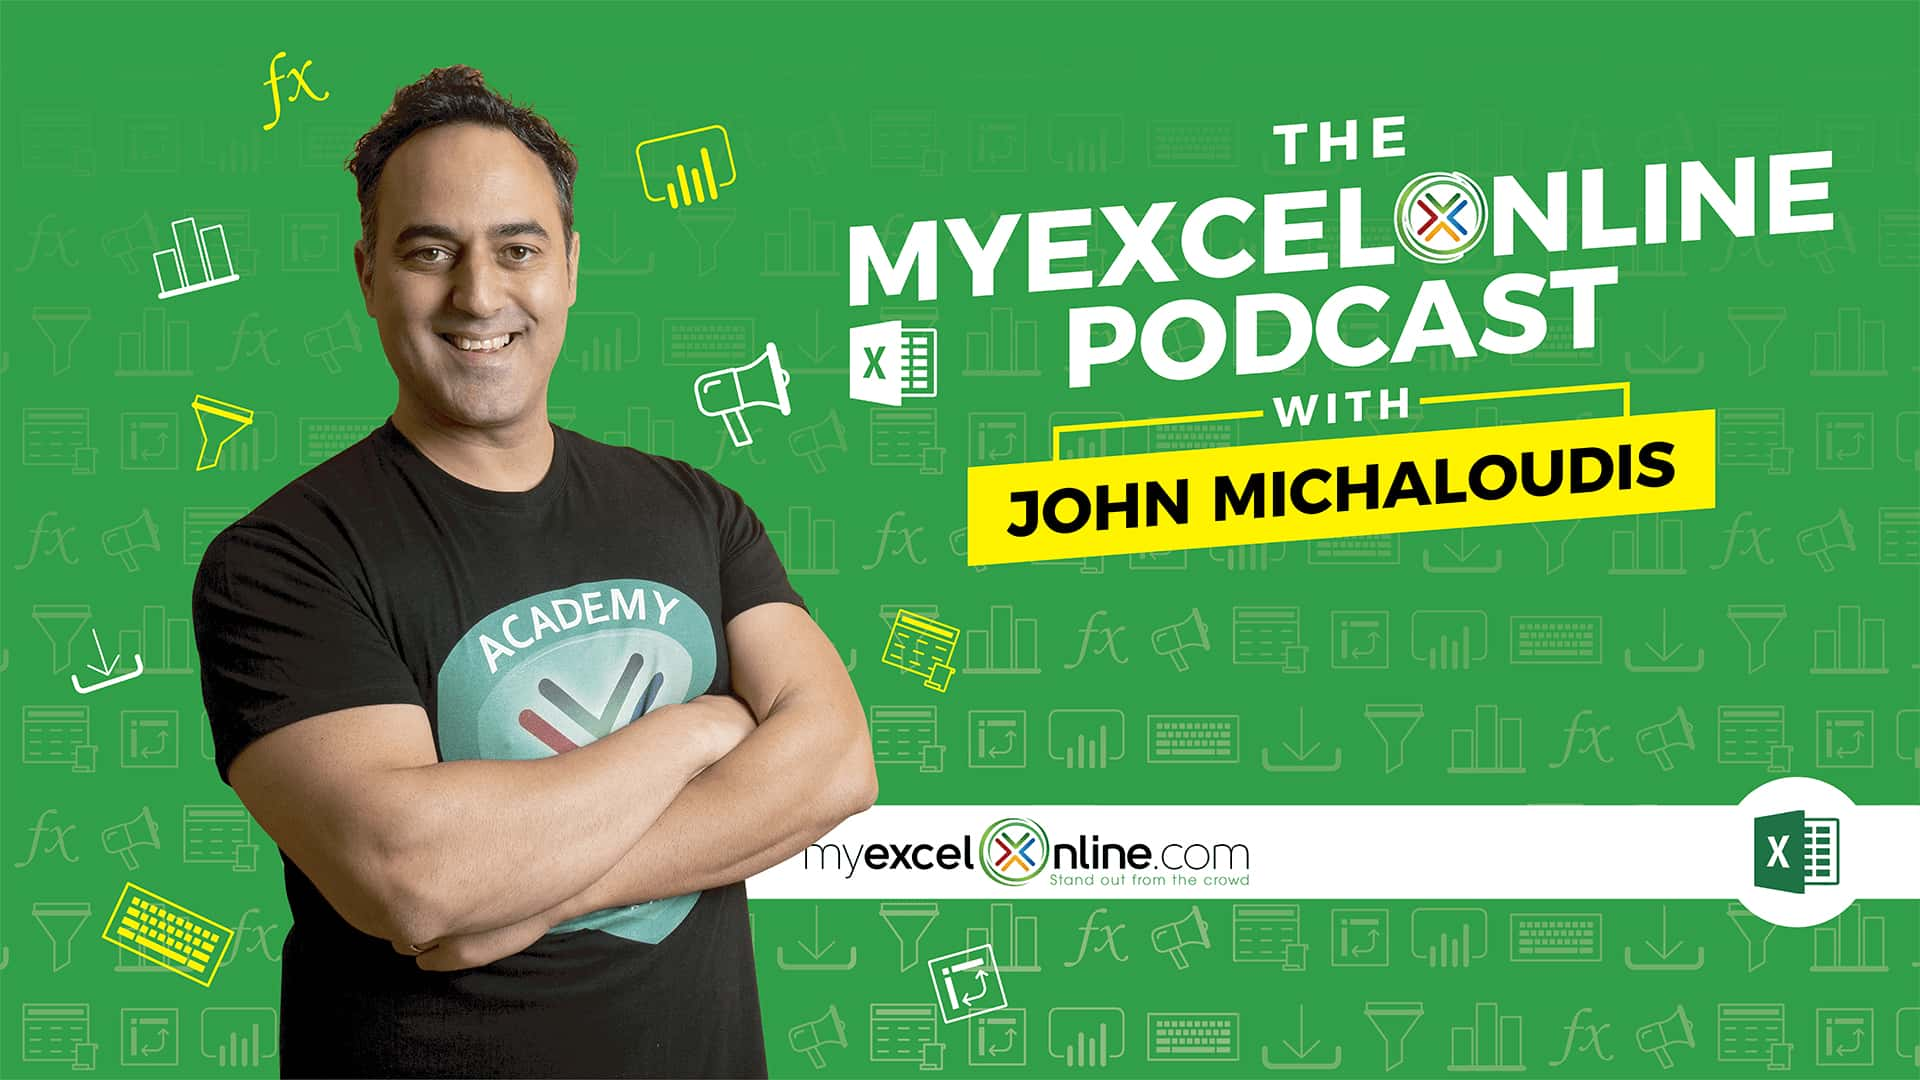 MyExcelOnline Podcasts